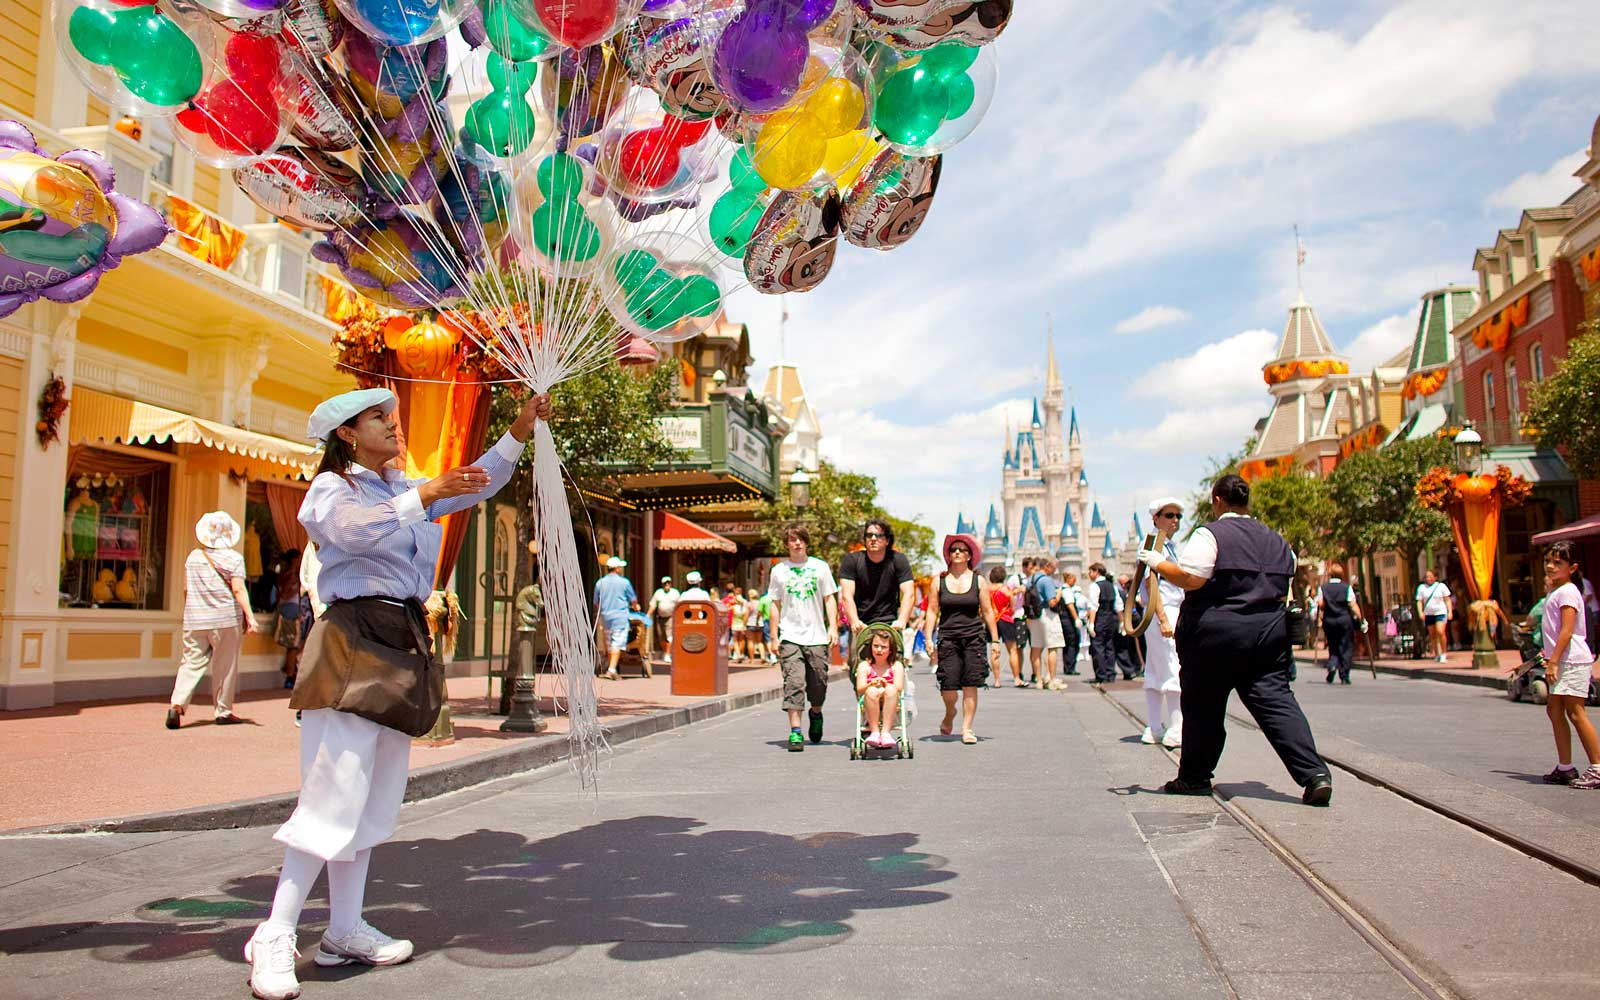 The Cheapest Month to Visit Disney World